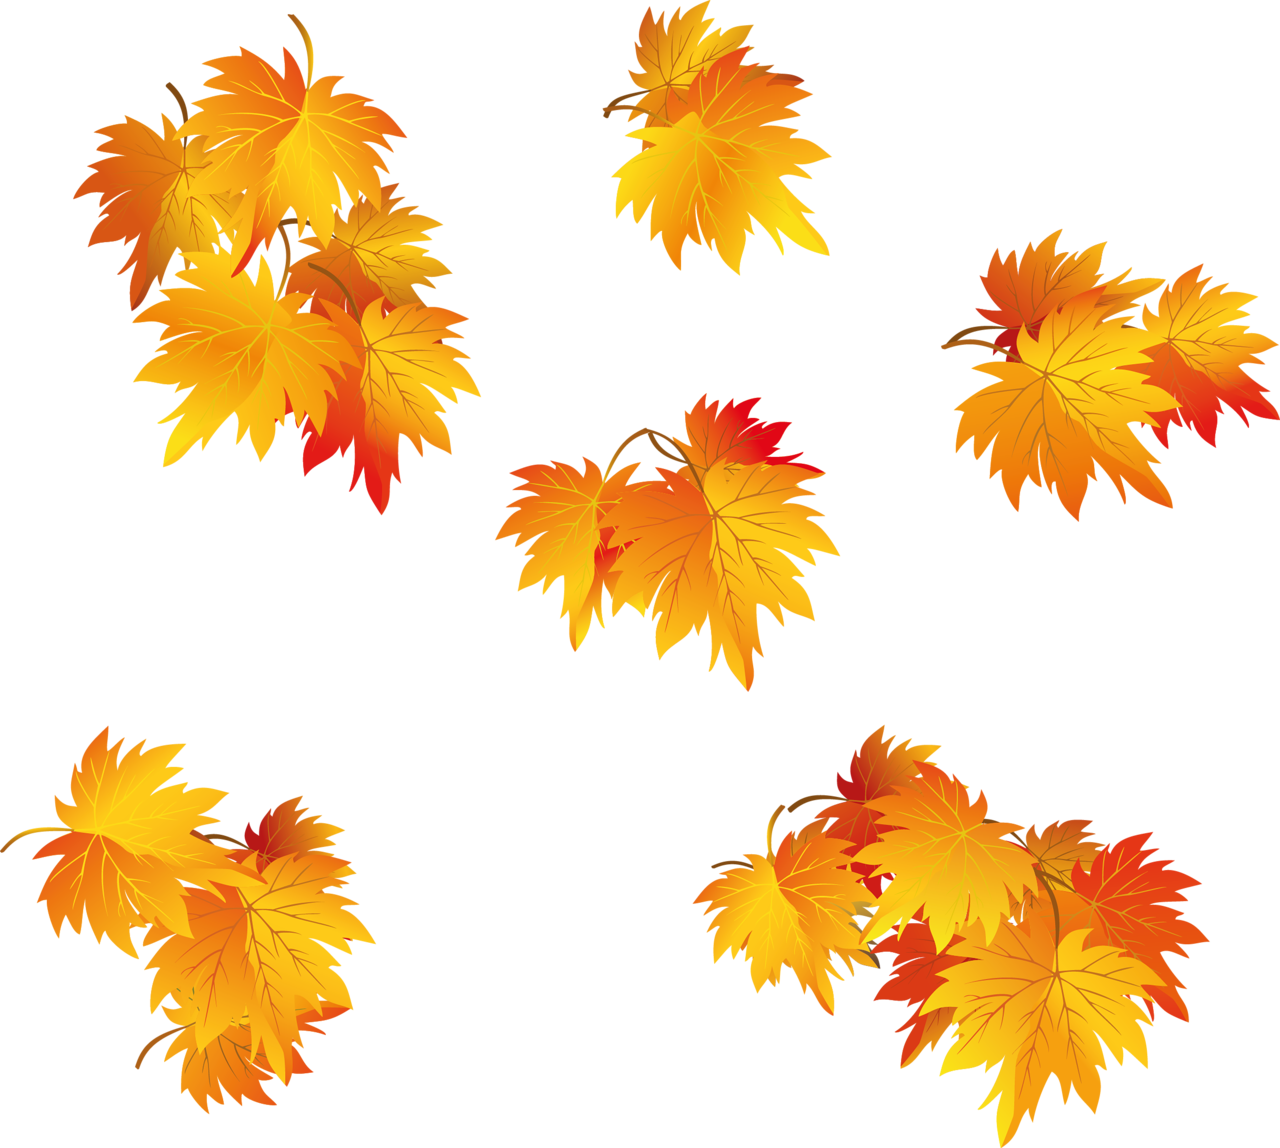 Fall leaf vector png. Leaves autumn background